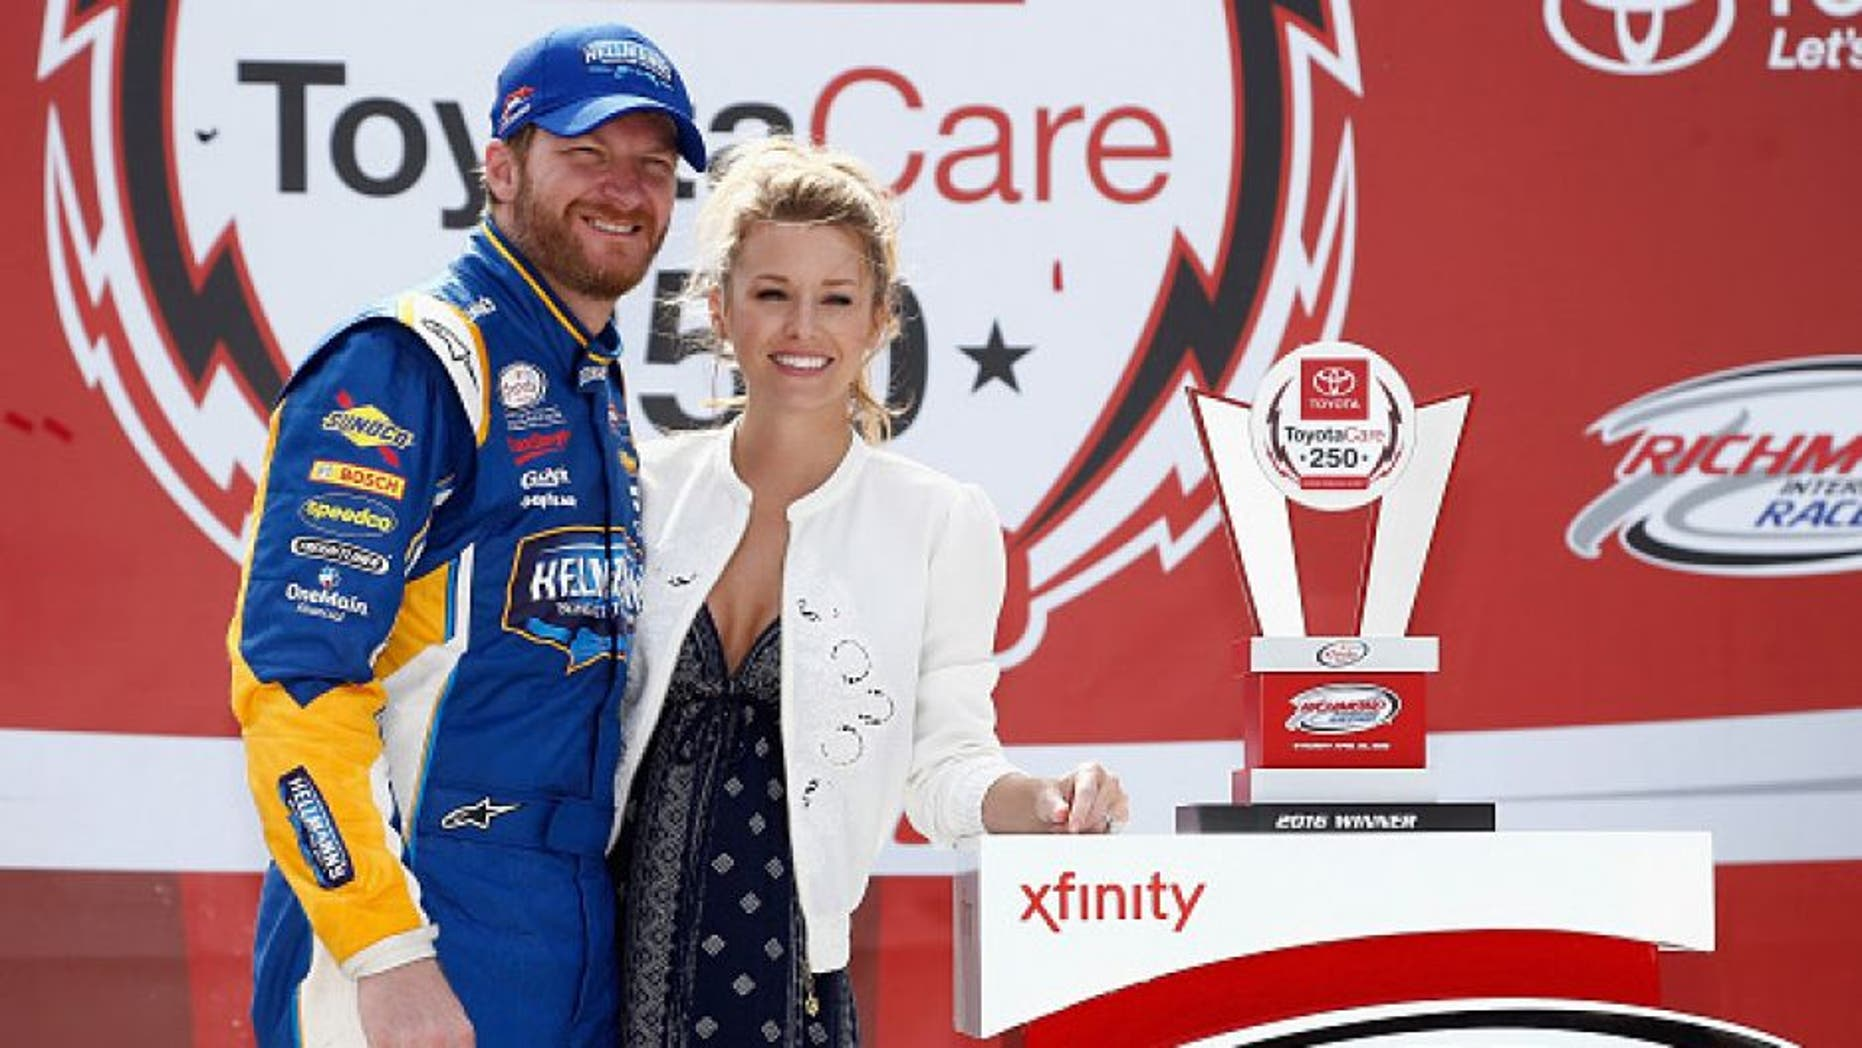 RICHMOND, VA - APRIL 23: Dale Earnhardt Jr., driver of the #88 Hellmann's Chevrolet, poses for a photo with his girlfriend Amy Reimann in Victory Lane after winning the NASCAR XFINITY Series ToyotaCare 250 at Richmond International Raceway on April 23, 2016 in Richmond, Virginia. (Photo by Jeff Zelevansky/Getty Images)